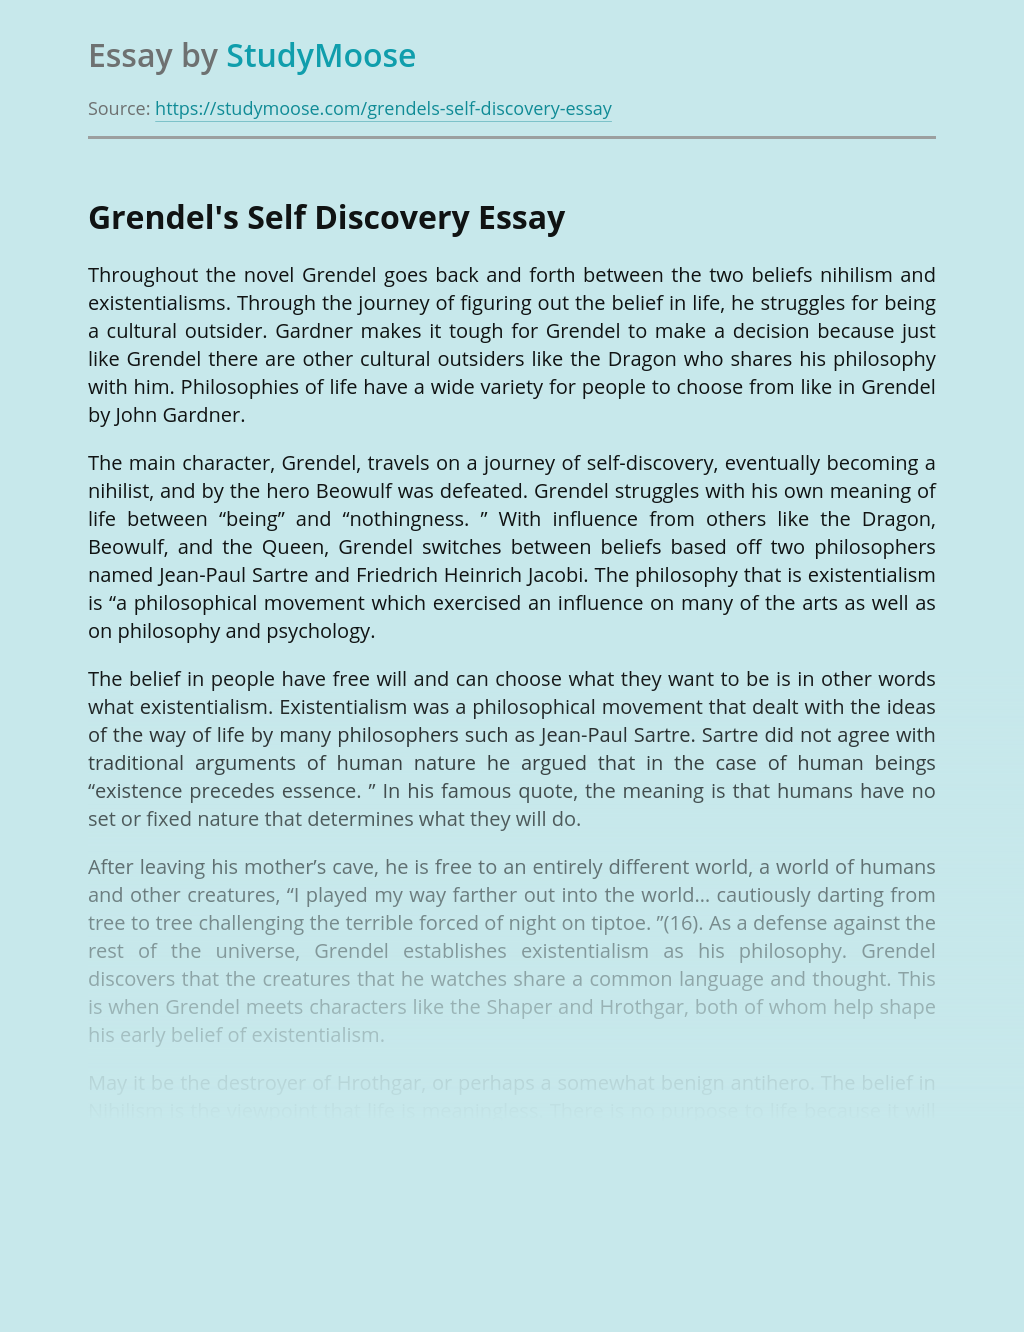 Grendel's Self Discovery